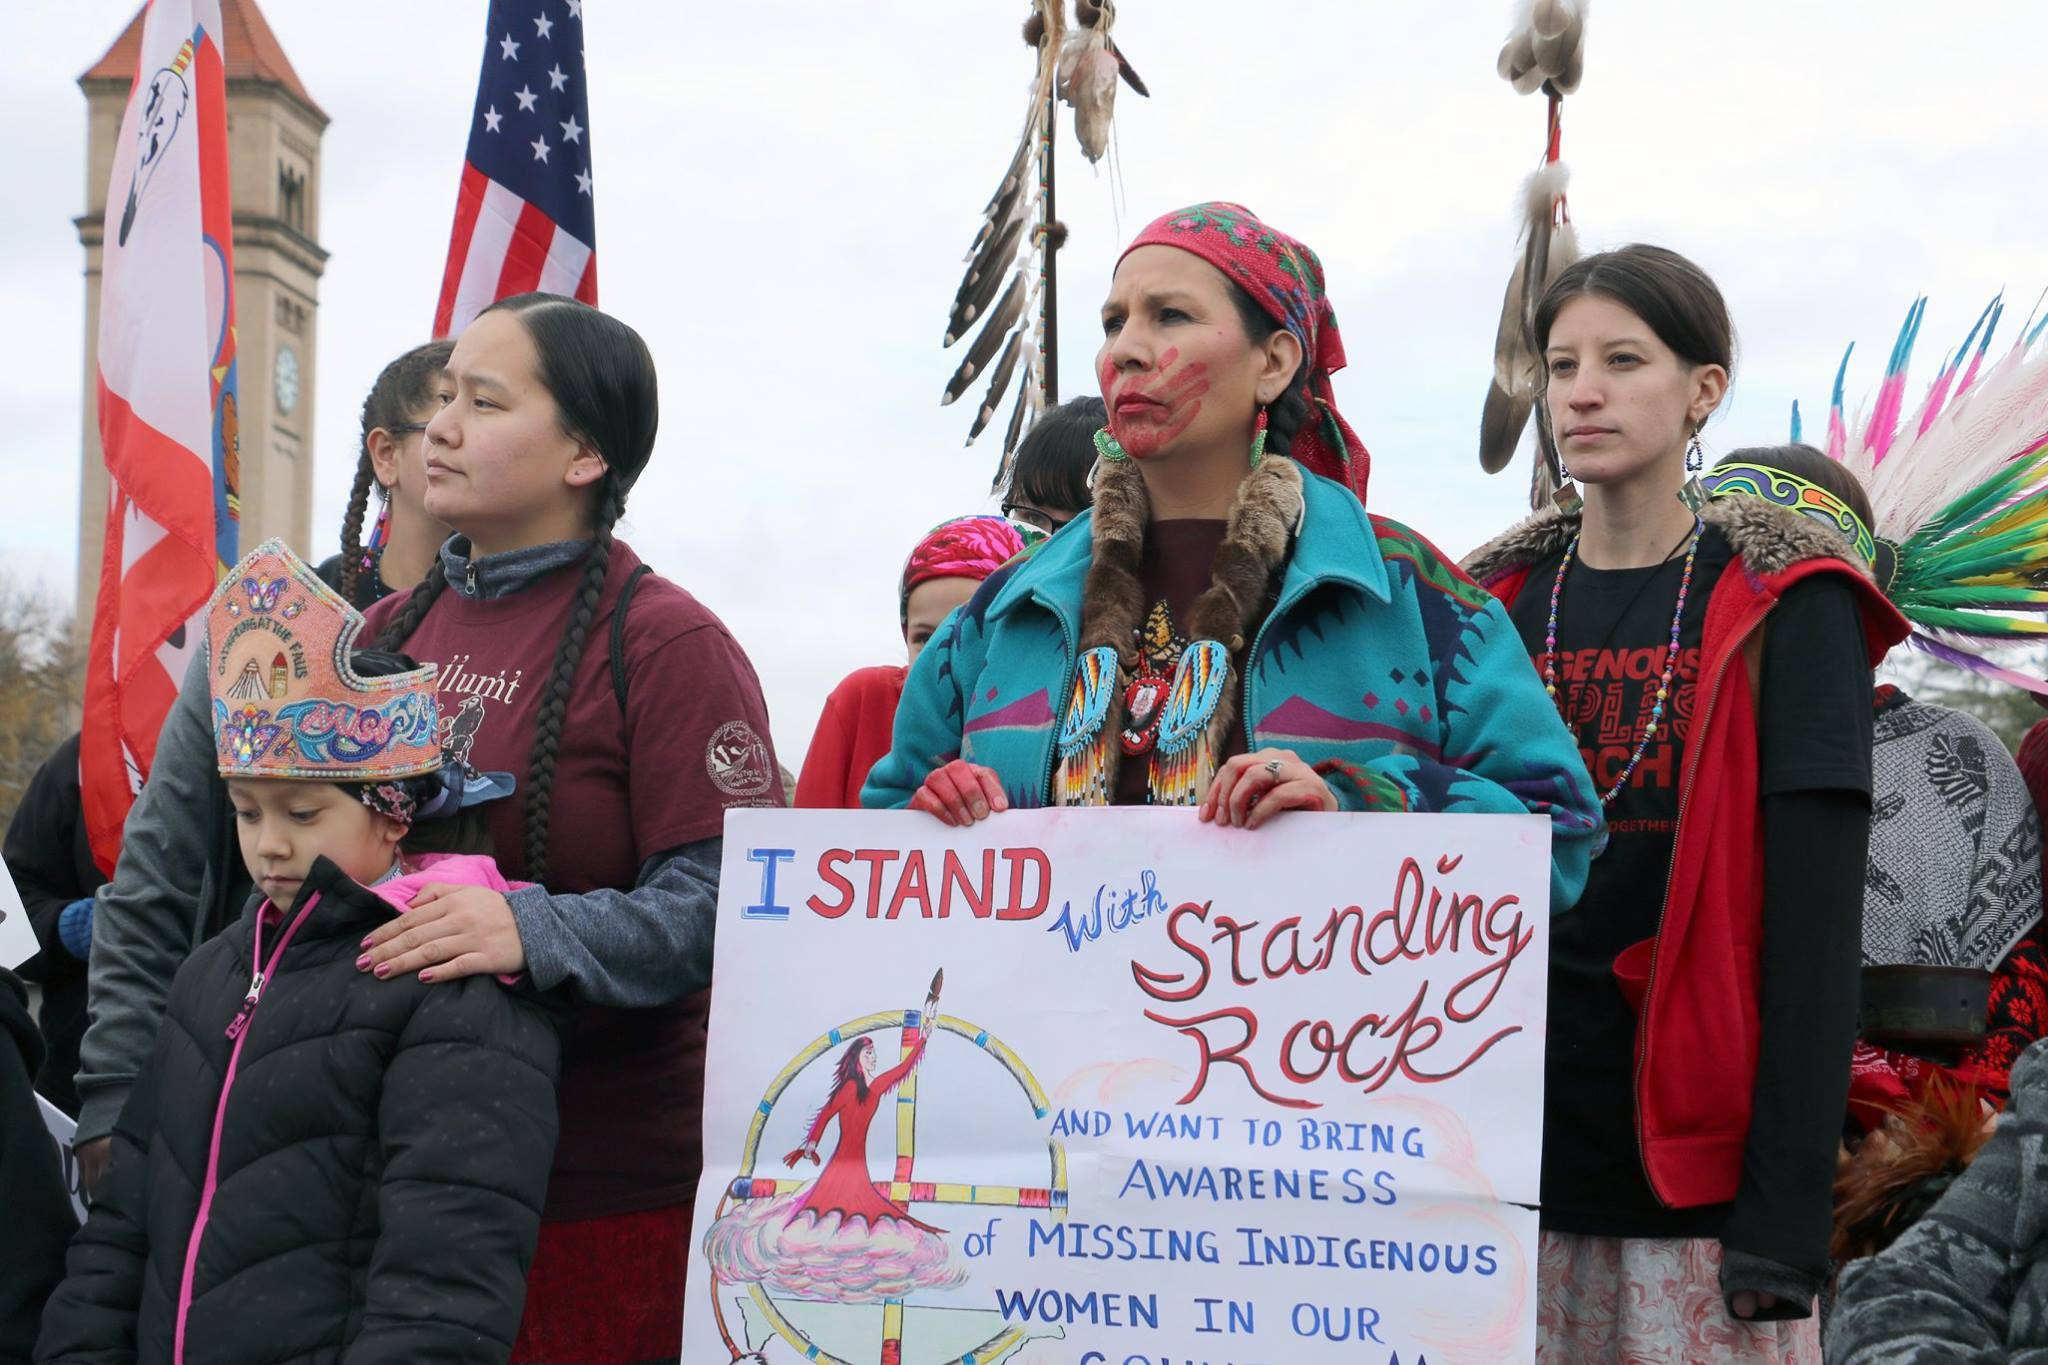 Highlighting the link between the Water Protector movement and the MMIW movement, Ann Ford (Coeur d'Alene) at the Indigenous Peoples March in Spokane, WA 2019, holds a march poster that reads, 'I stand with Standing Rock and Want to Bring Awareness of Missing Indigenous Women in our Country.'